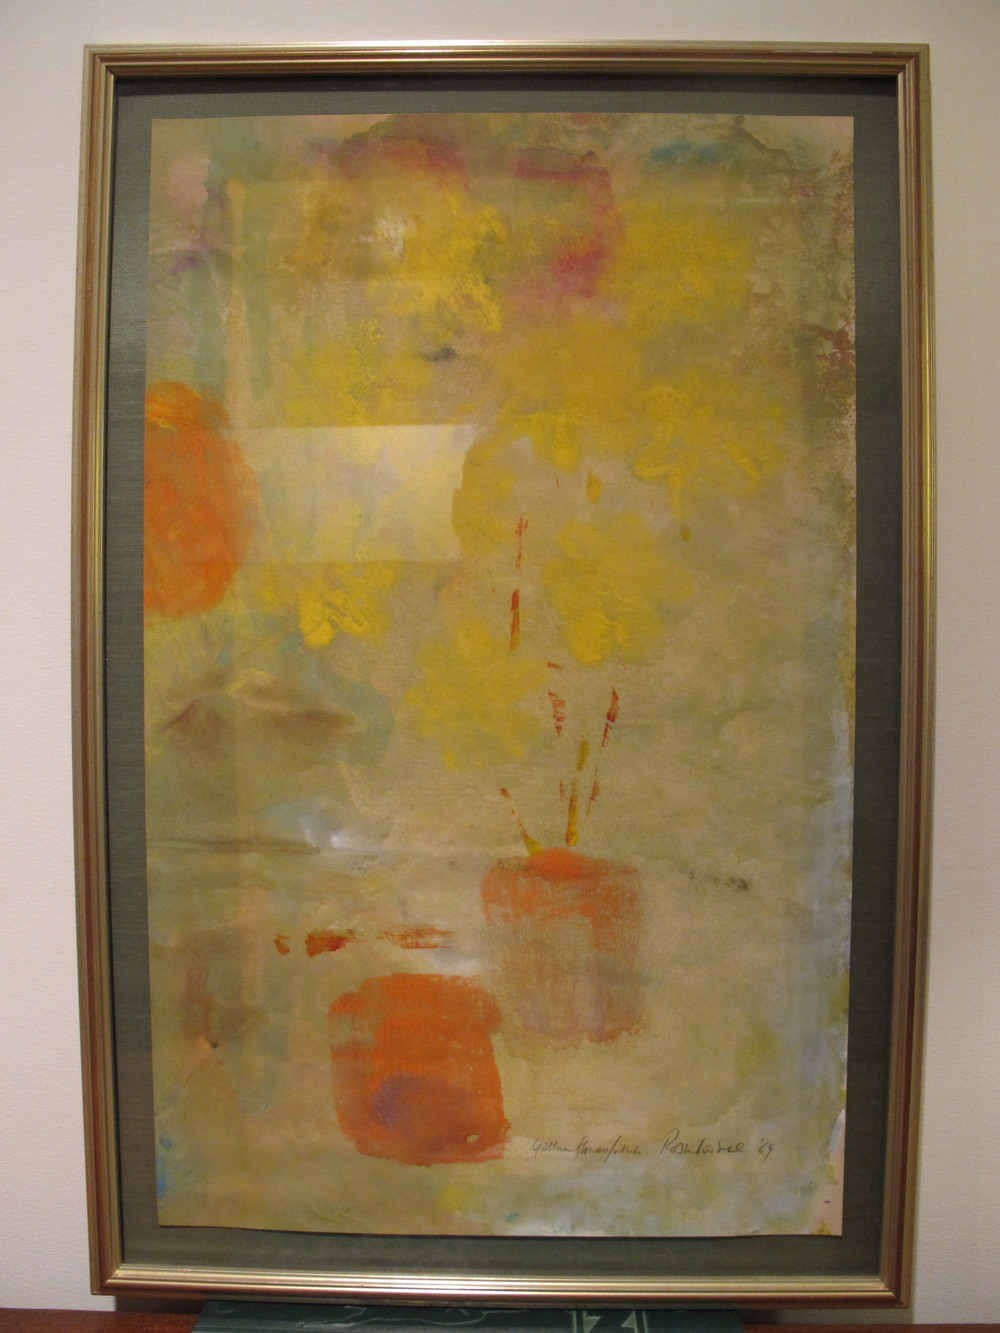 MID CENTURY ABSTRACT WATERCOLOR BY IRWIN ROSENHOUSE